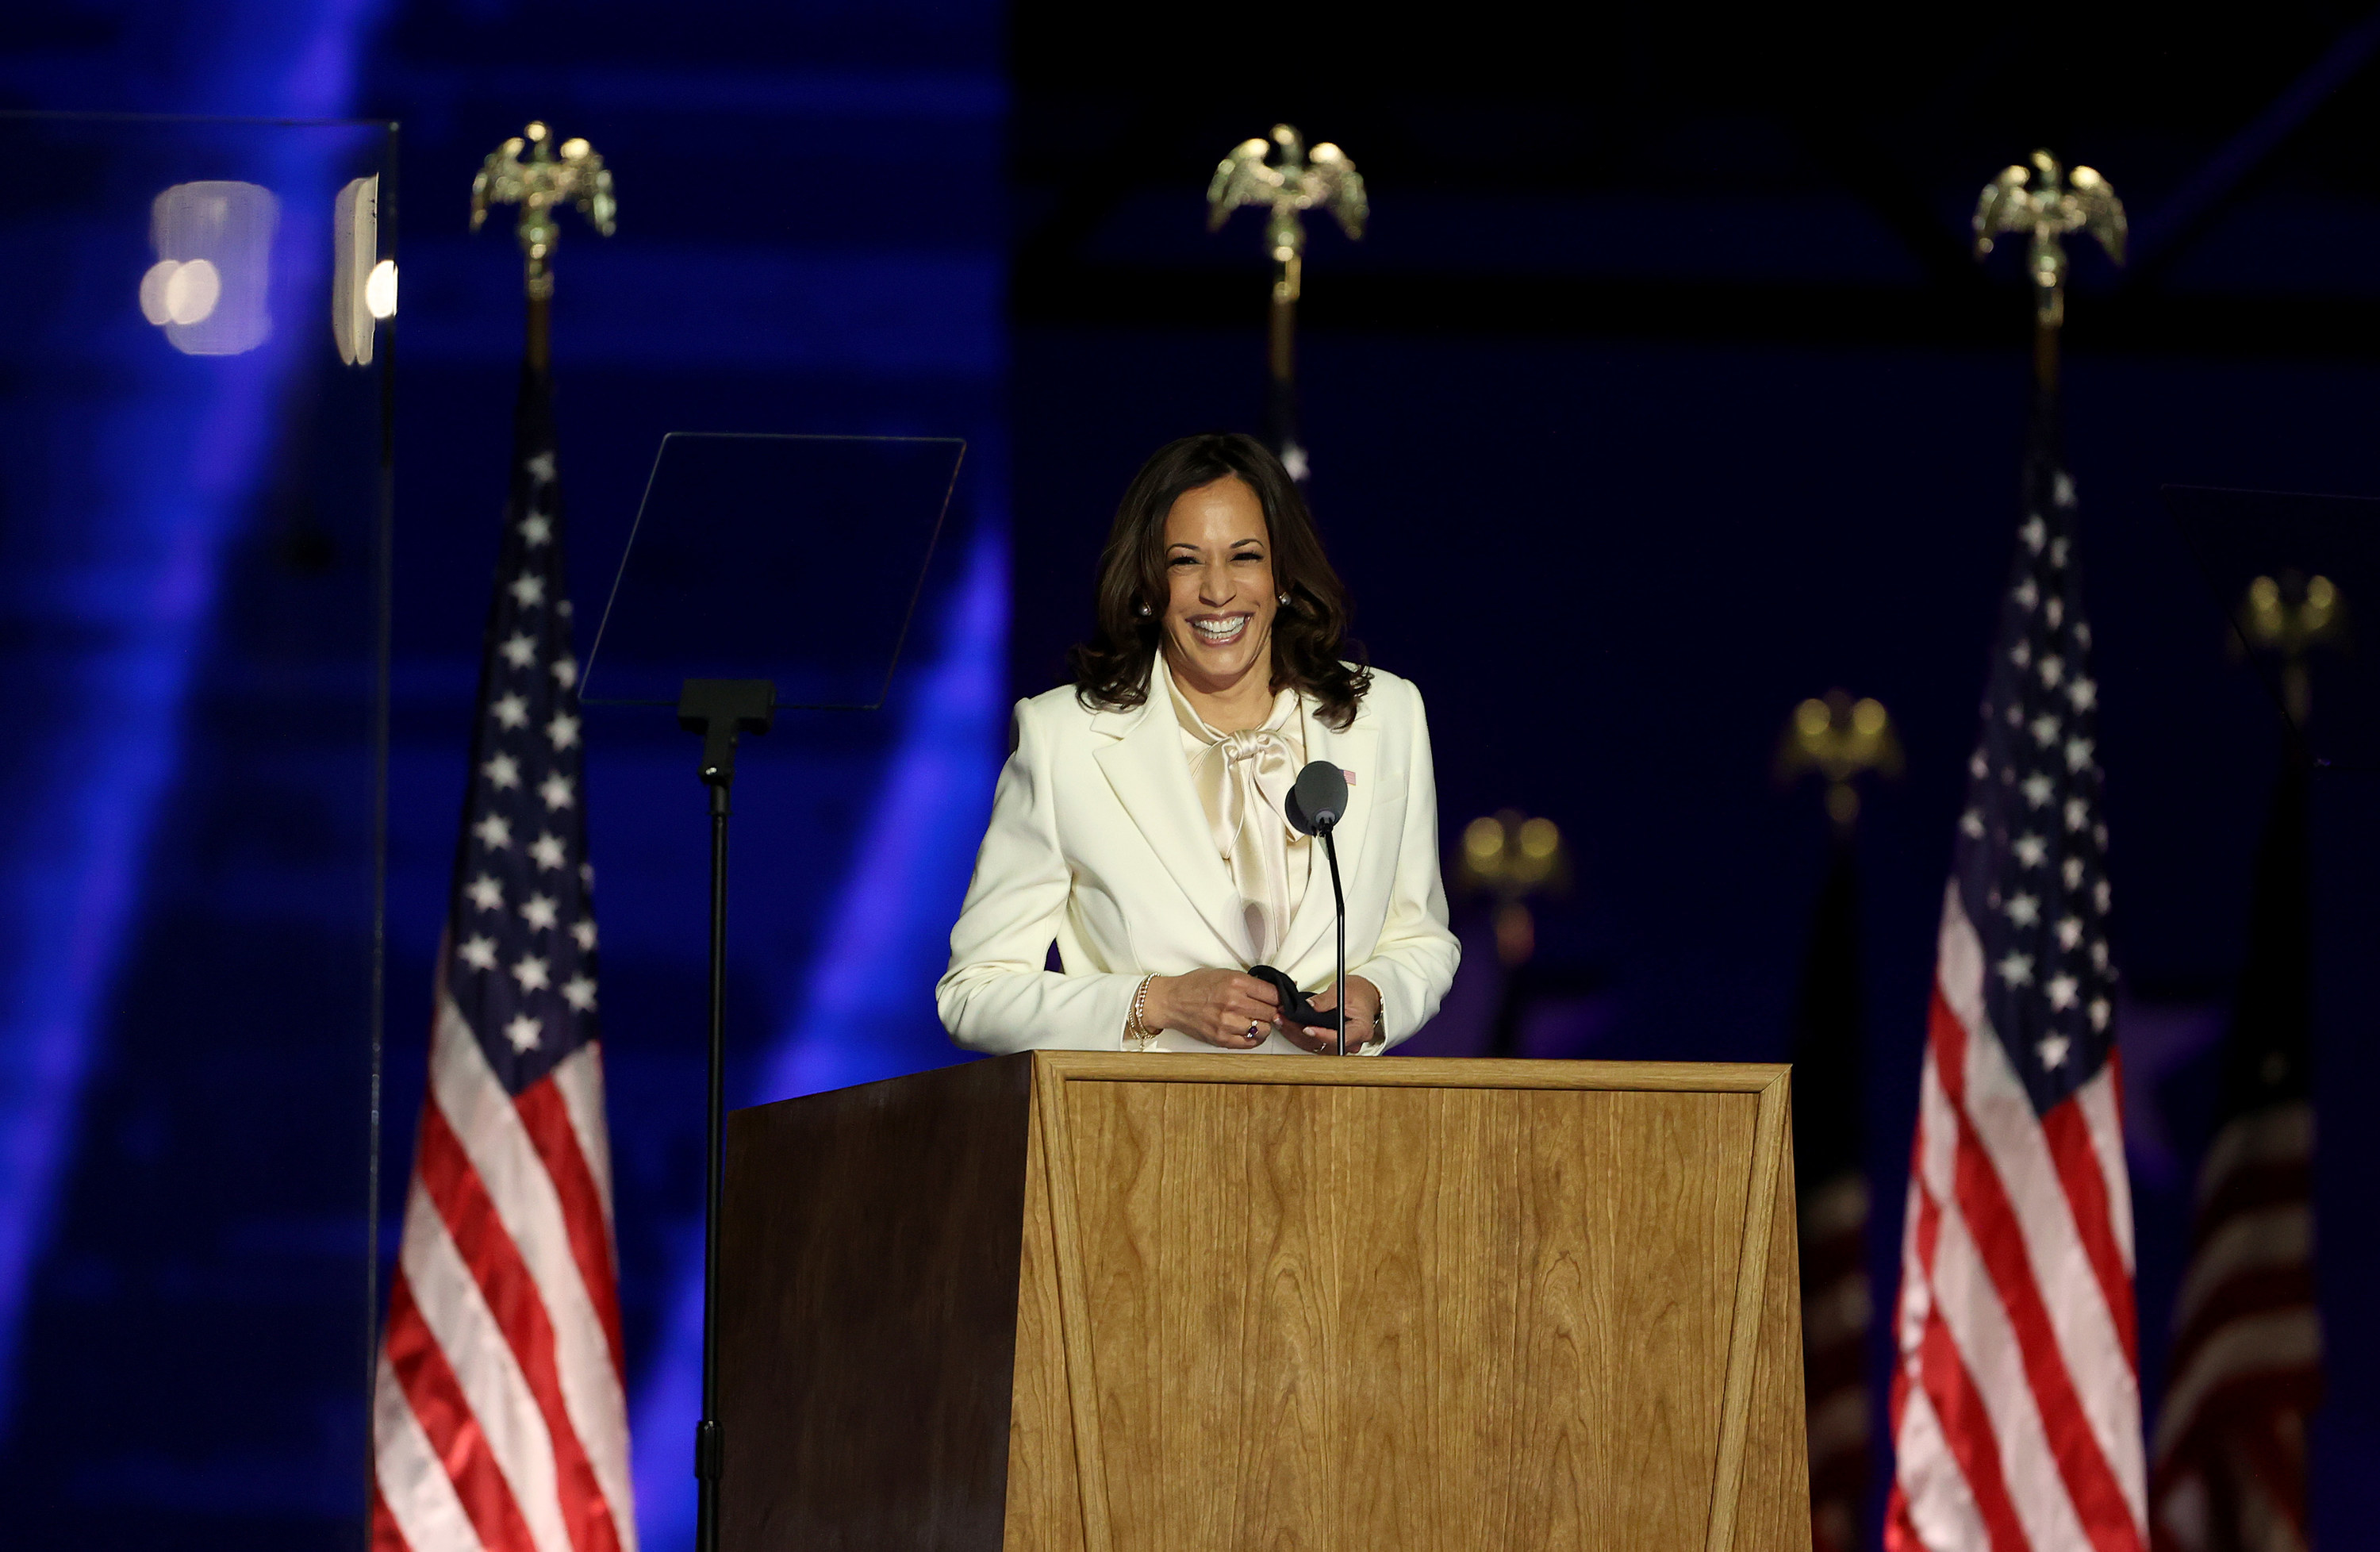 Harris speaking after she and Vice President Biden were declared the winners of the 2020 Presidential election